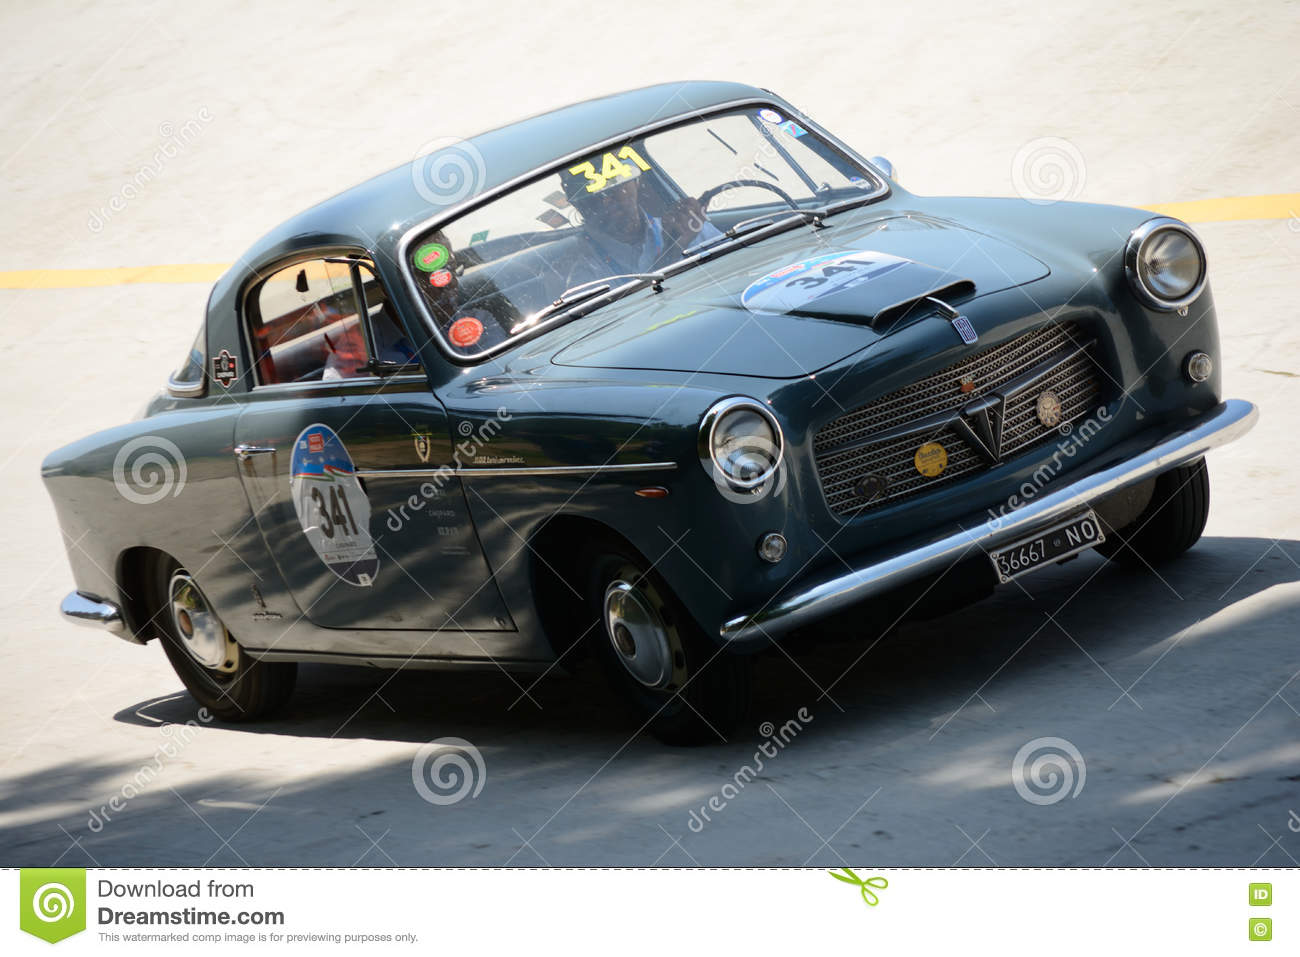 103 1100 1955 2016 circuit coup fiat